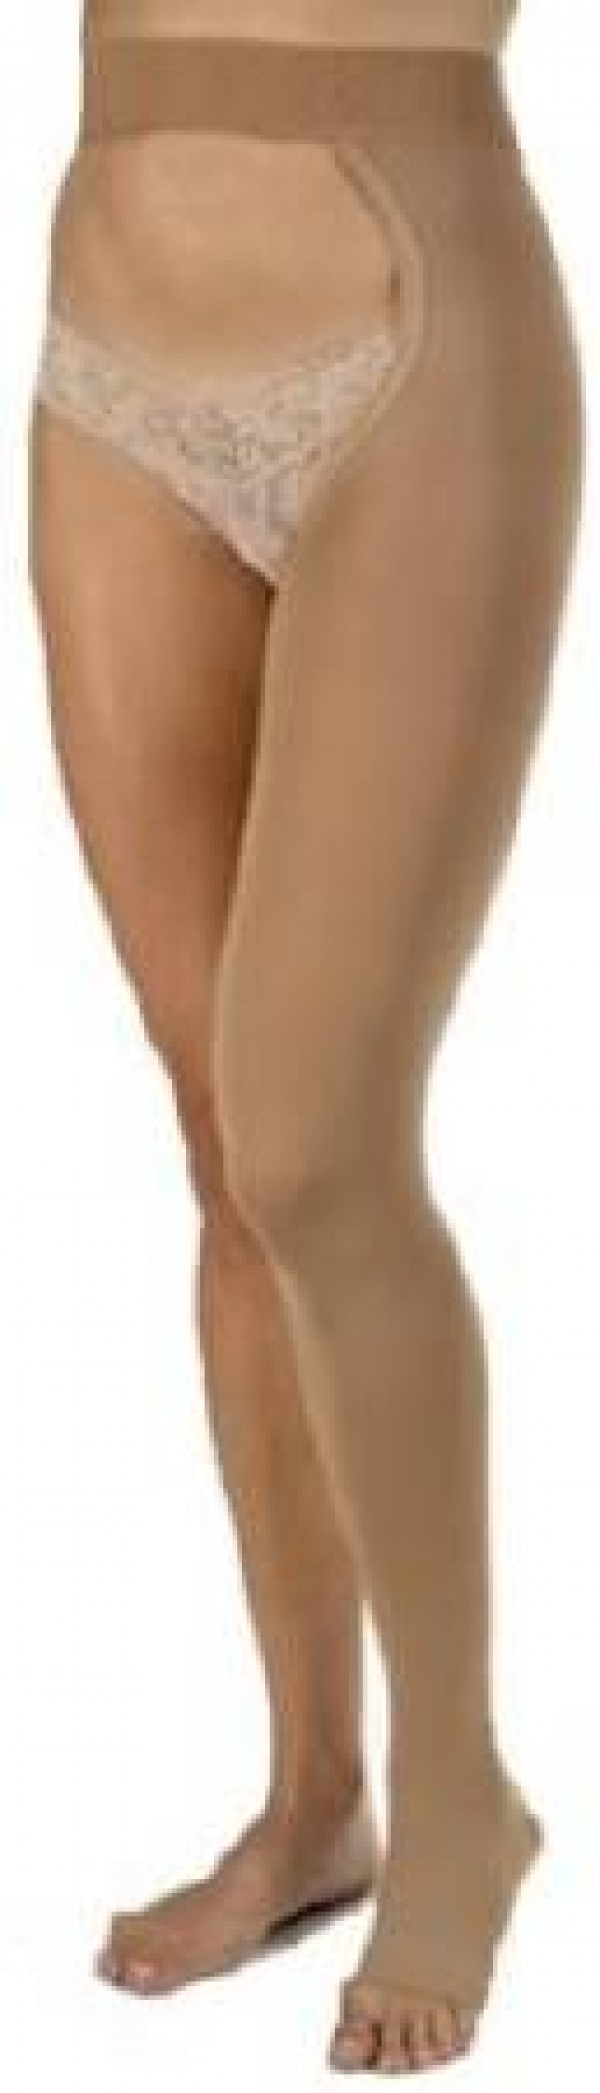 Relief Single Leg Chap Compression Stockings OPEN TOE 20-30 mmHg by Jobst